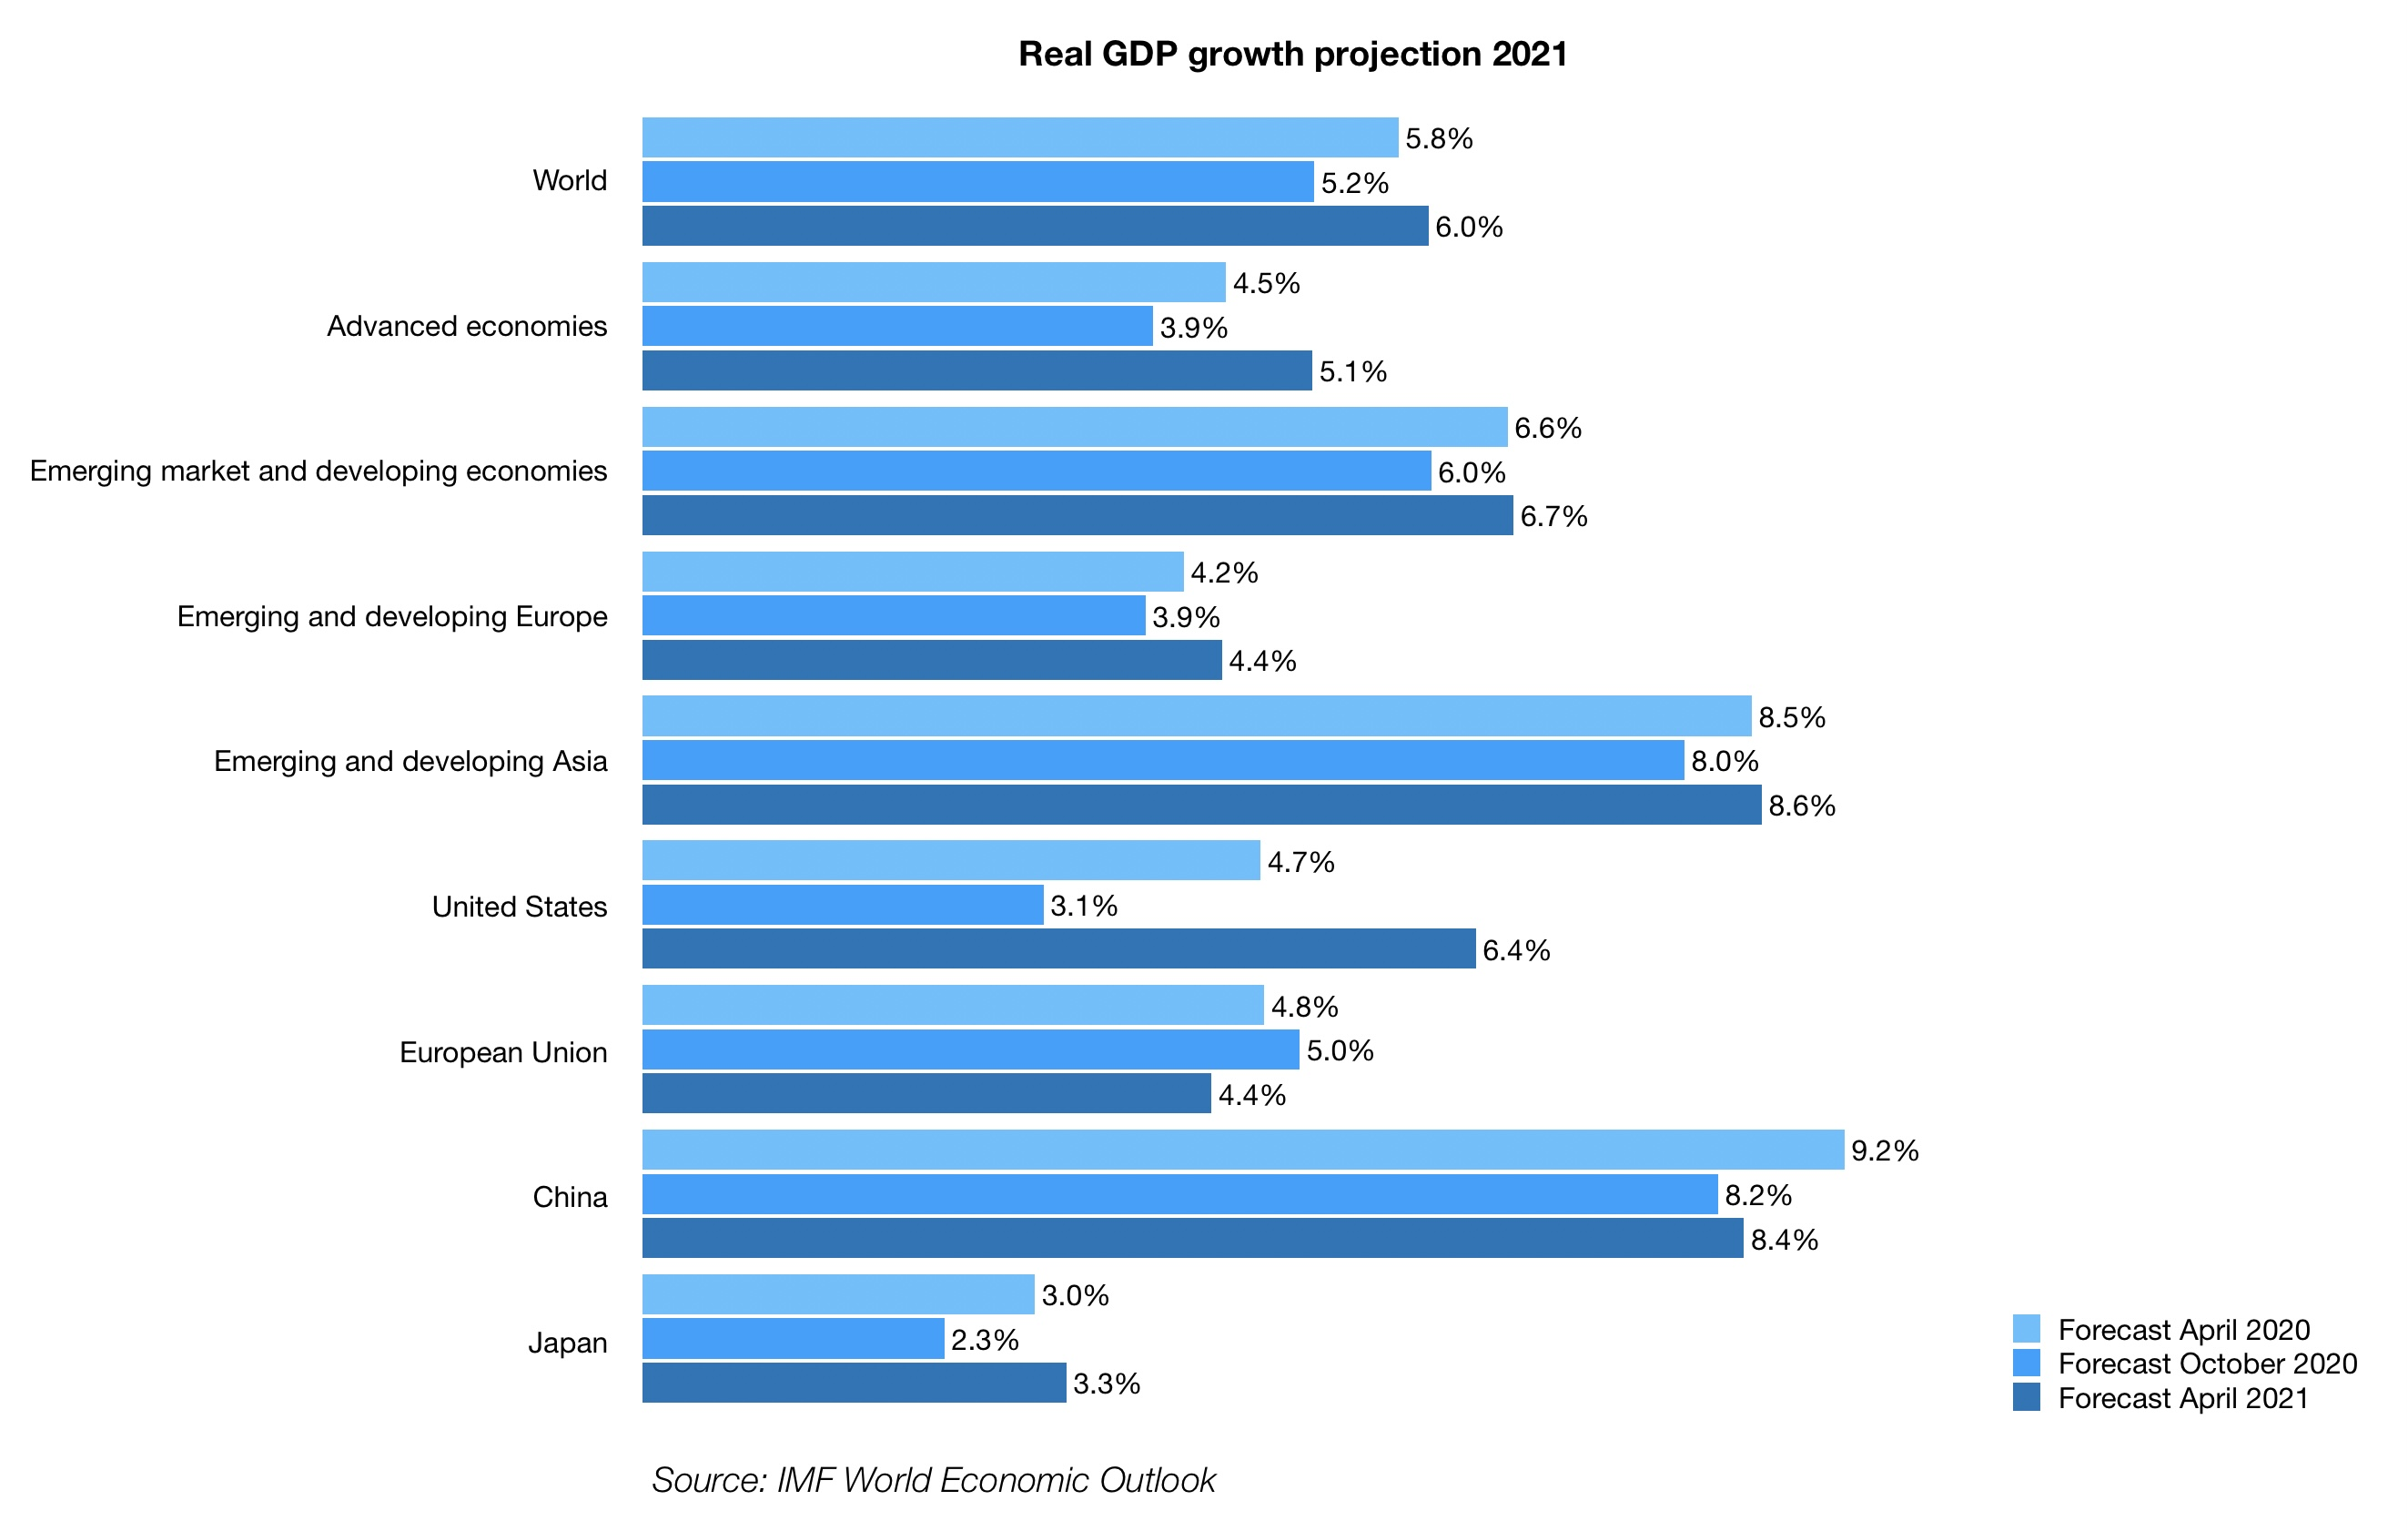 Real GDP growth projection 2021